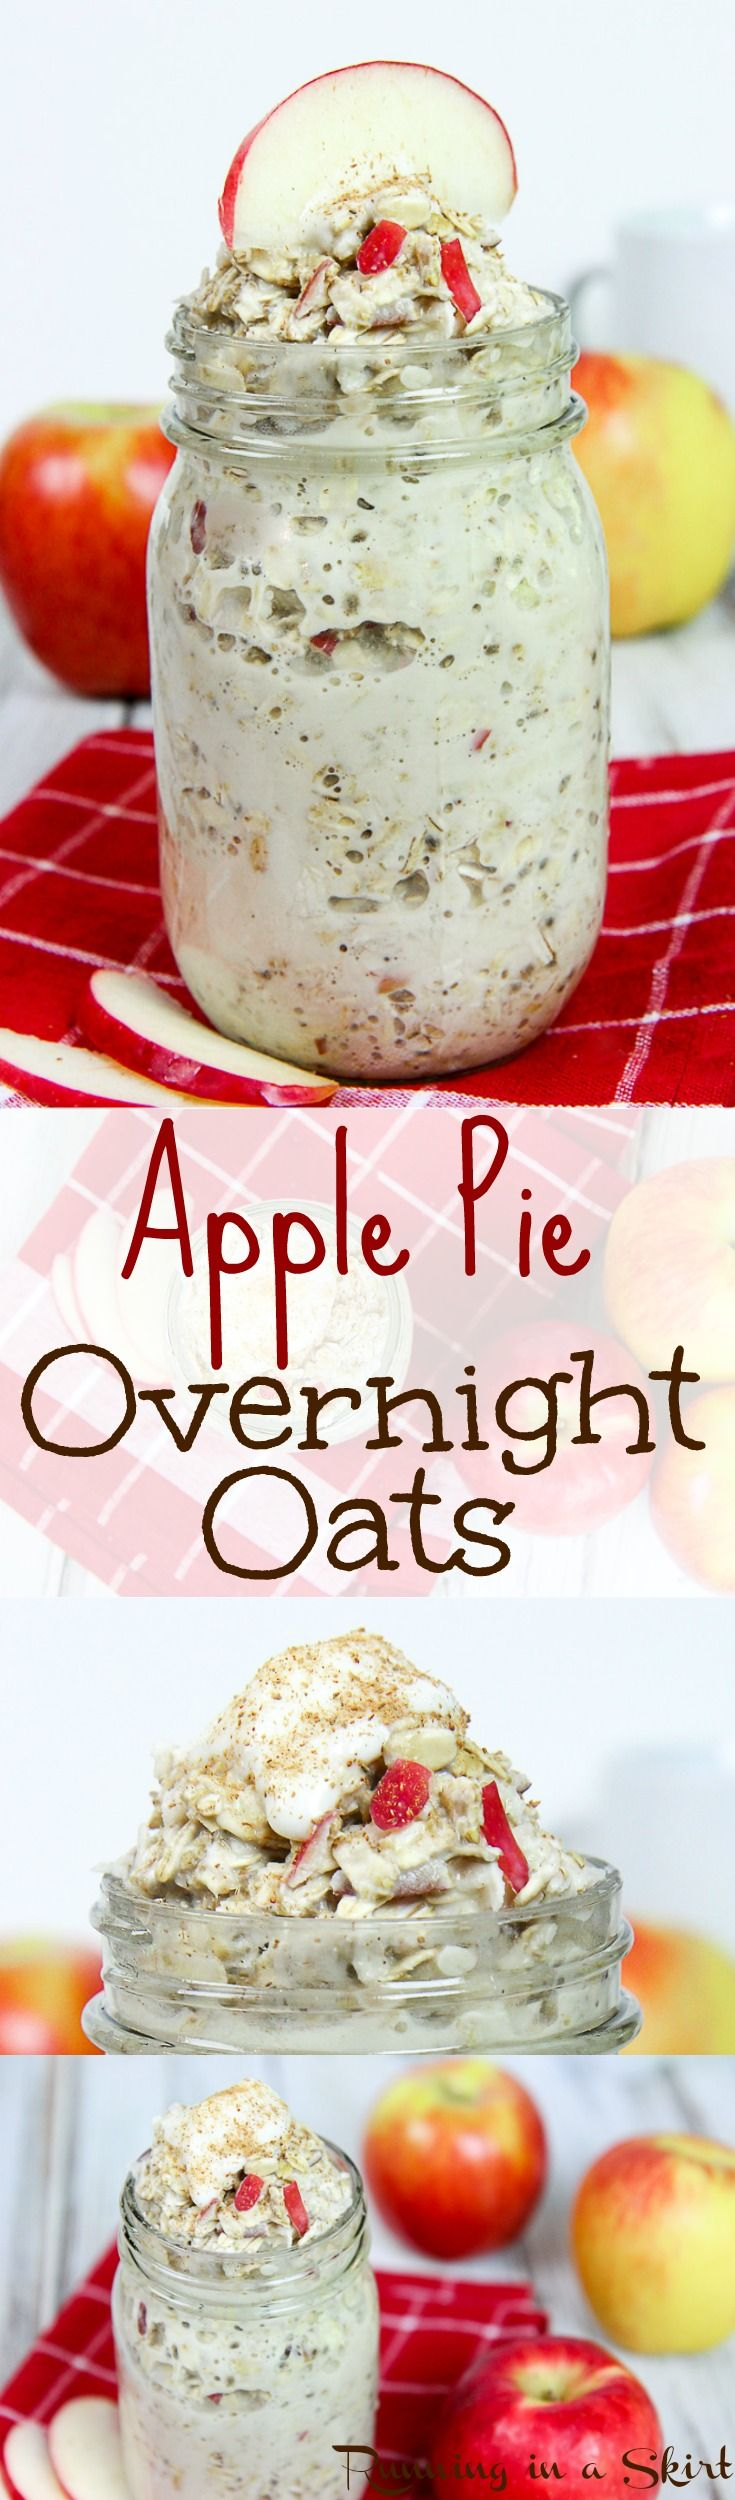 Healthy & Clean Apple Pie Overnight Oats recipe- with chia seeds! A perfect breakfast to start your mornings right. Vegetarian & vegan healthy oatmeal recipes. / Running in a Skirt